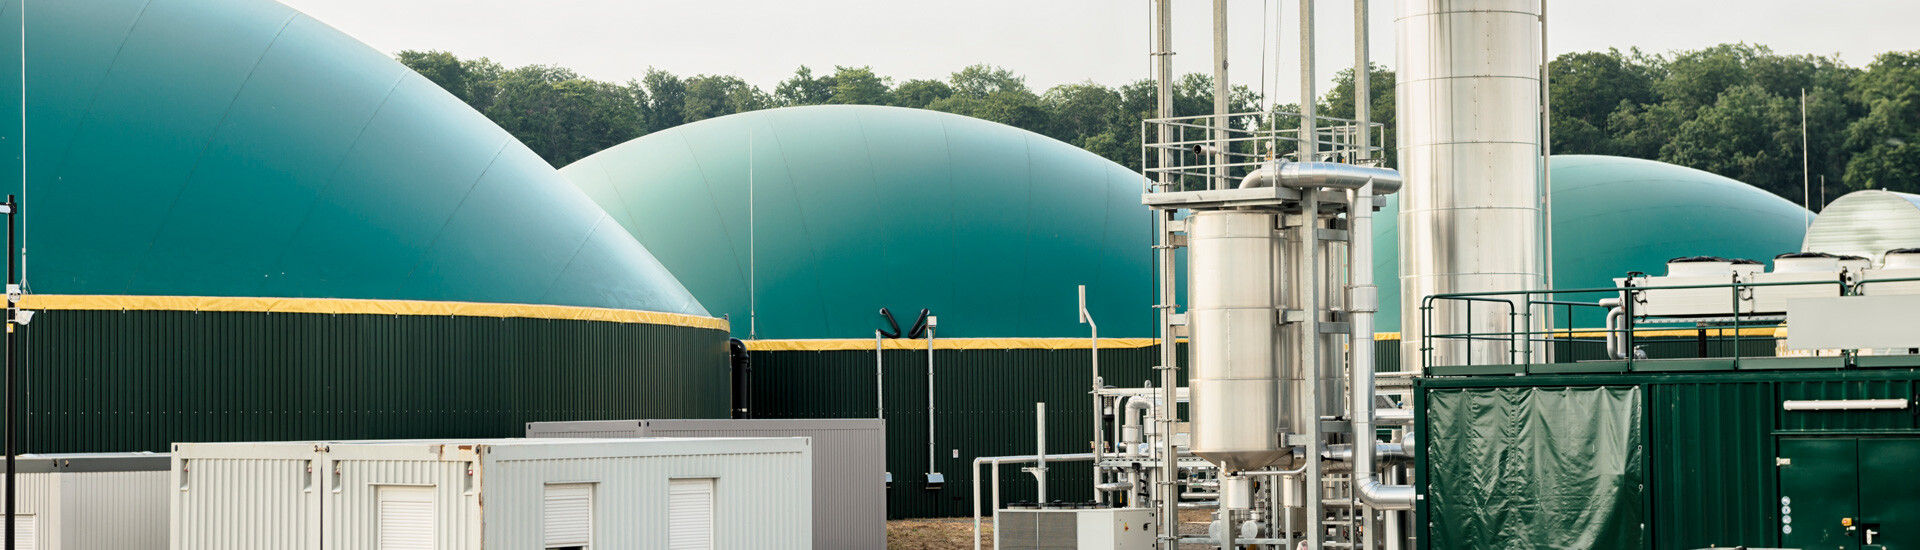 Biogas CO2 Removal - Membrane Technology and Research